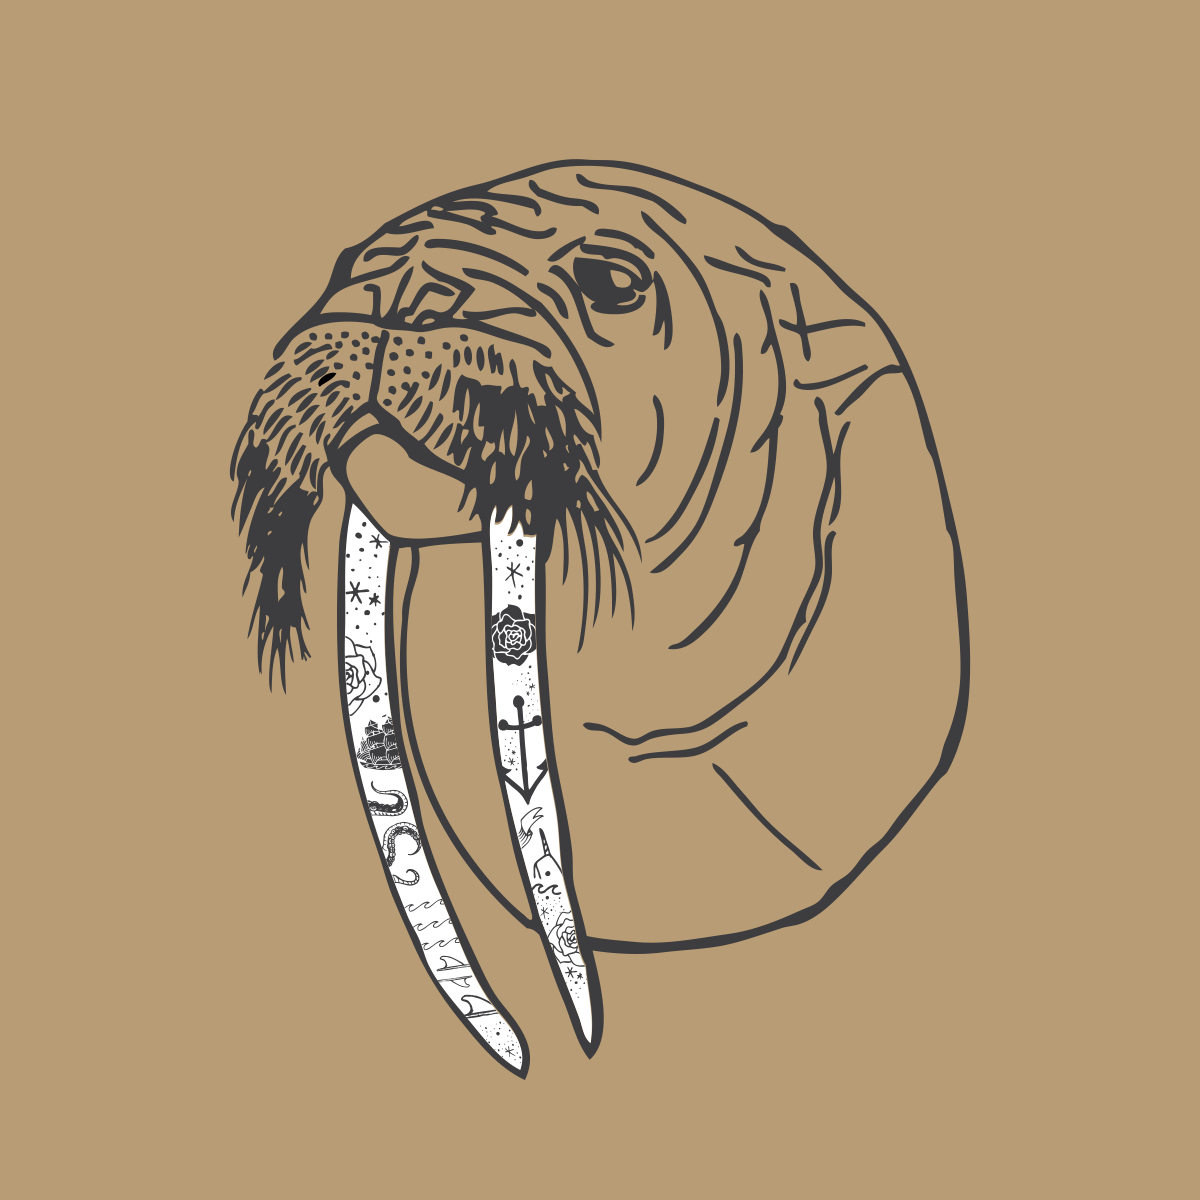 Scrimshaw Wally   Apparel and hat design for Toes on the Nose surf company. Newport Beach, California.